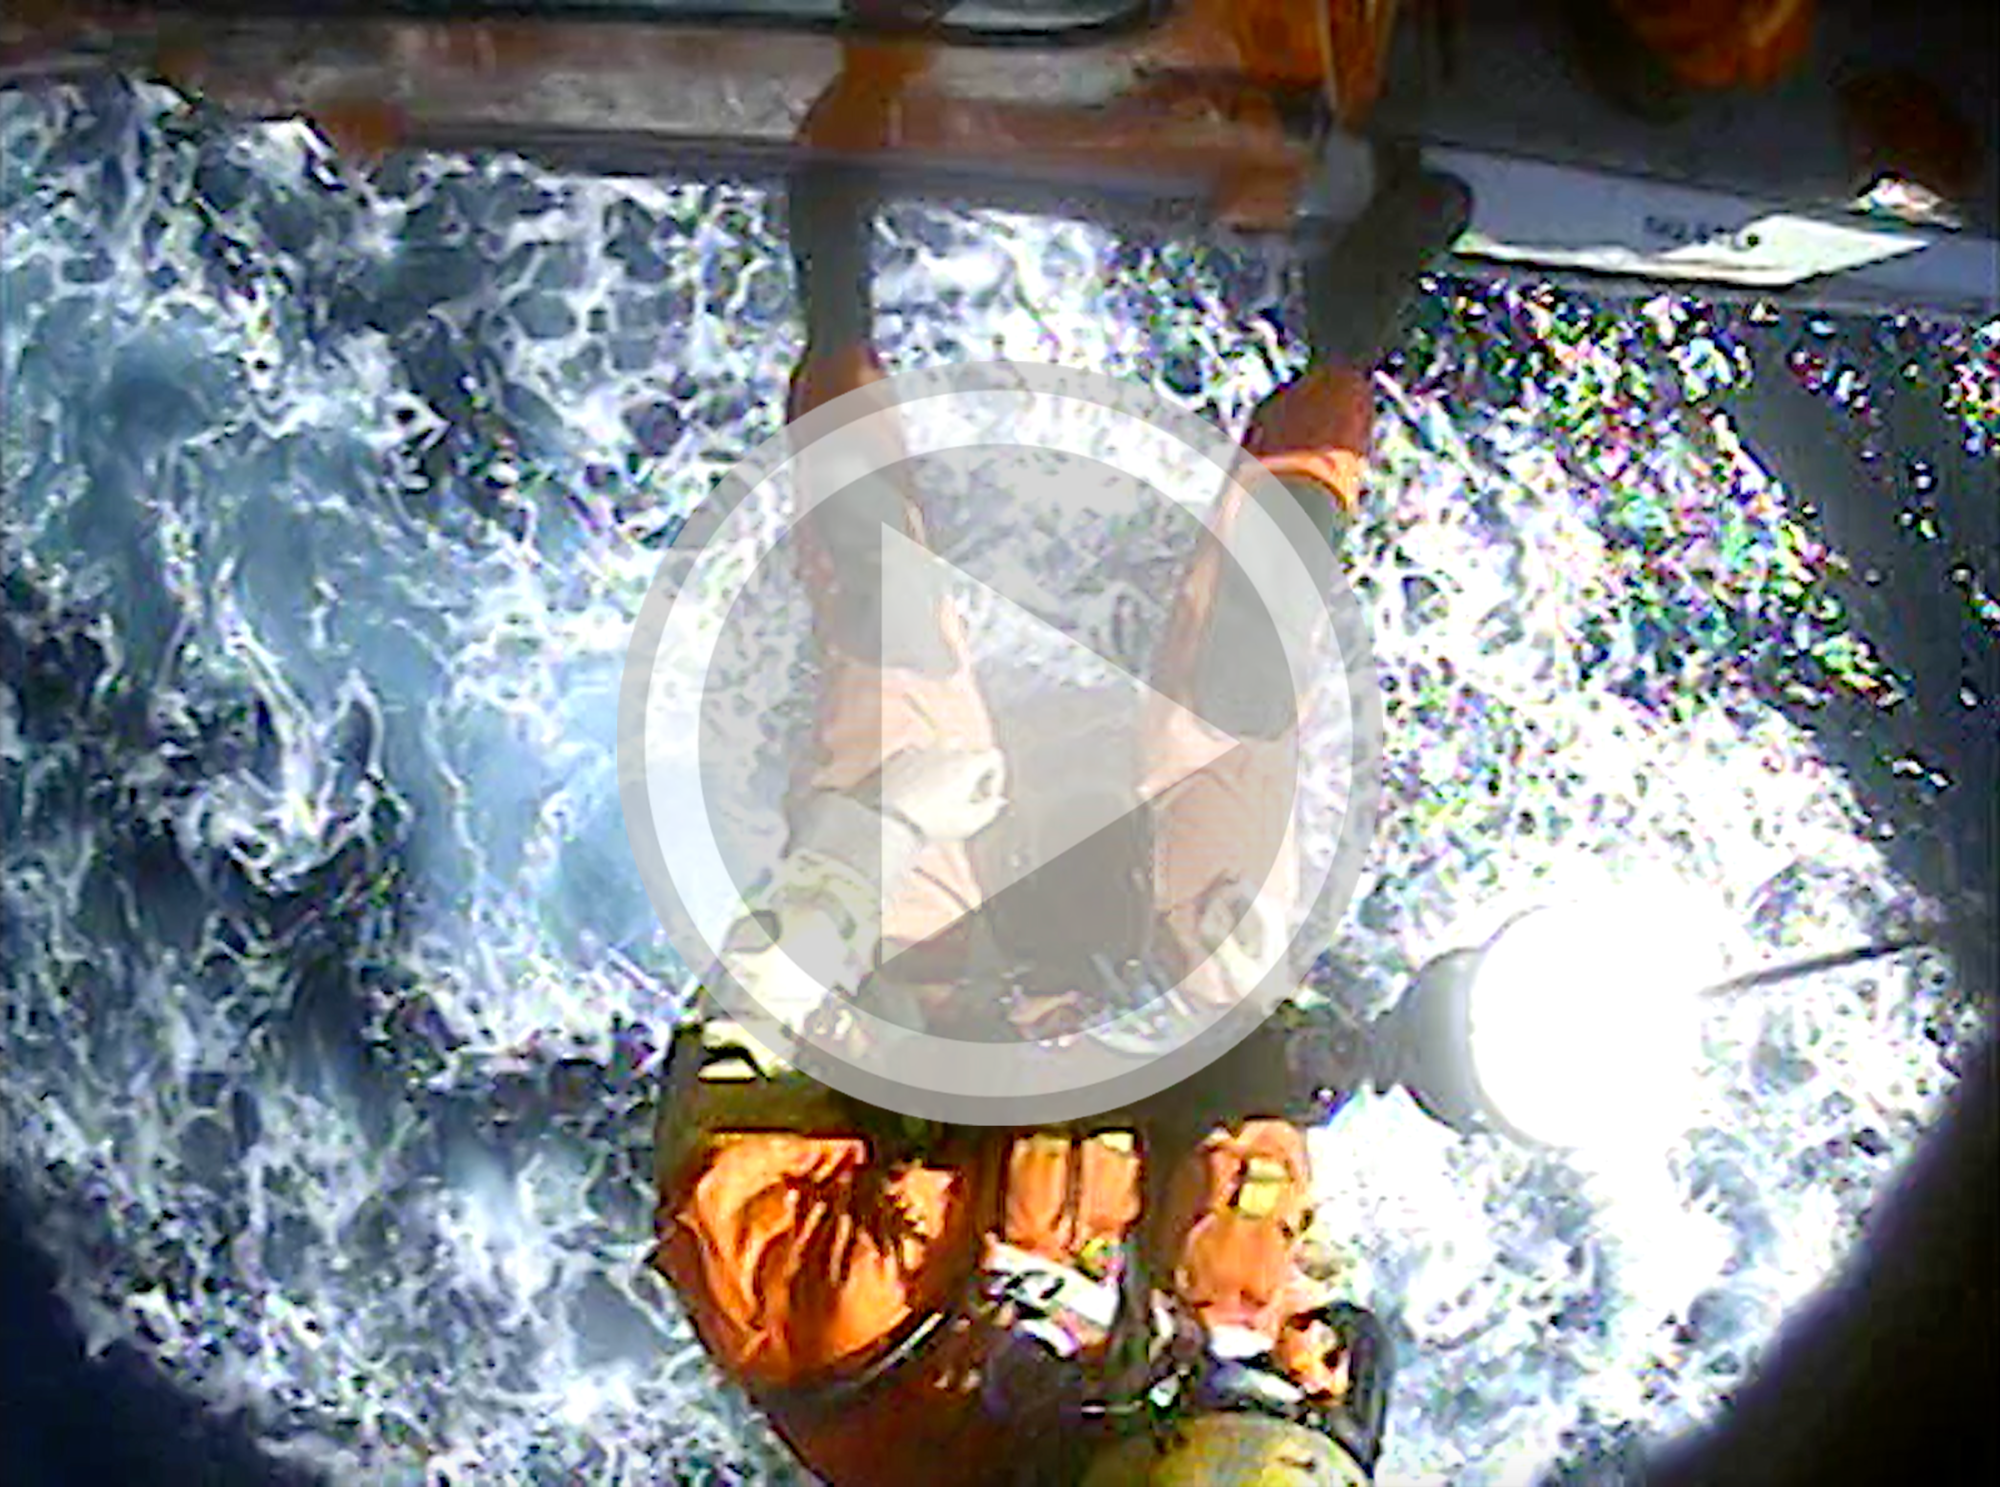 The crew aboard an Air Station San Francisco MH-65 Dolphin helicopter medevac a 19-year-old man from the fishing vessel Ginger approximately 8 miles west of San Nicolas Island, Calif., June 20, 2020. The crew transported the patient to Torrance Memorial Hospital in Torrance, Calif. (U.S. Coast Guard video)